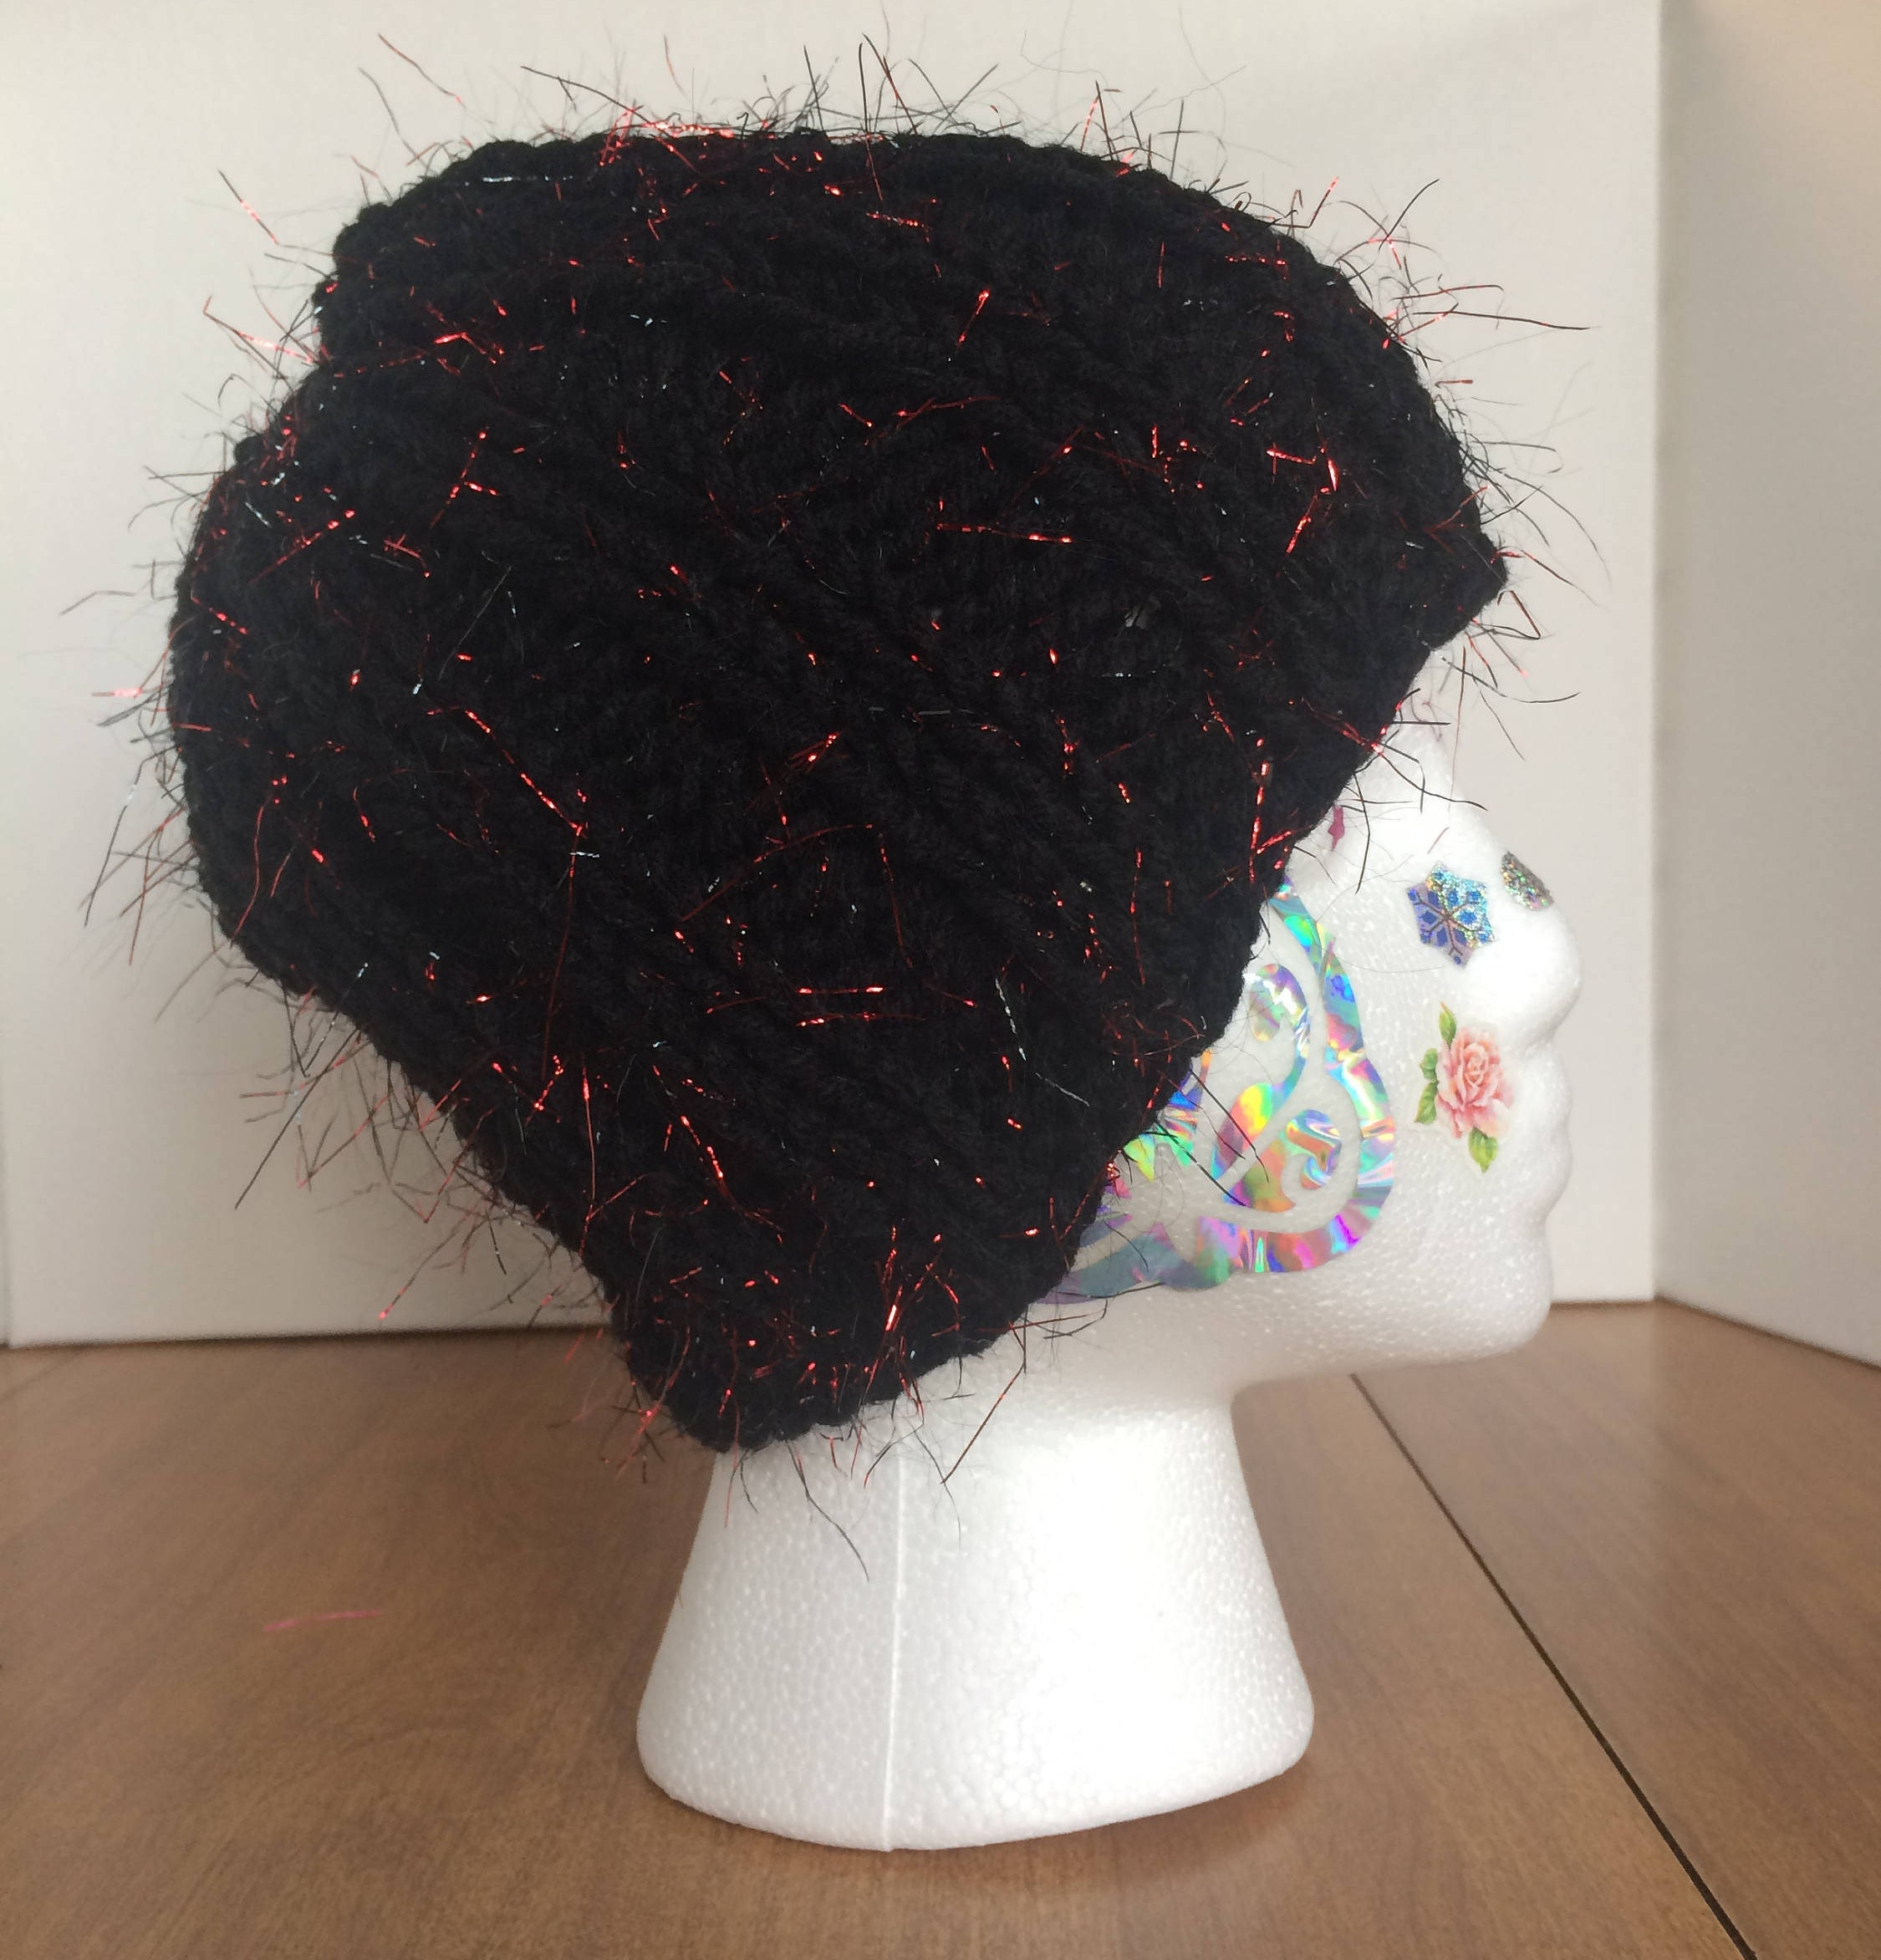 7b12ceae554 Fuzzy Bucket Hat in Black and Red Sparkles